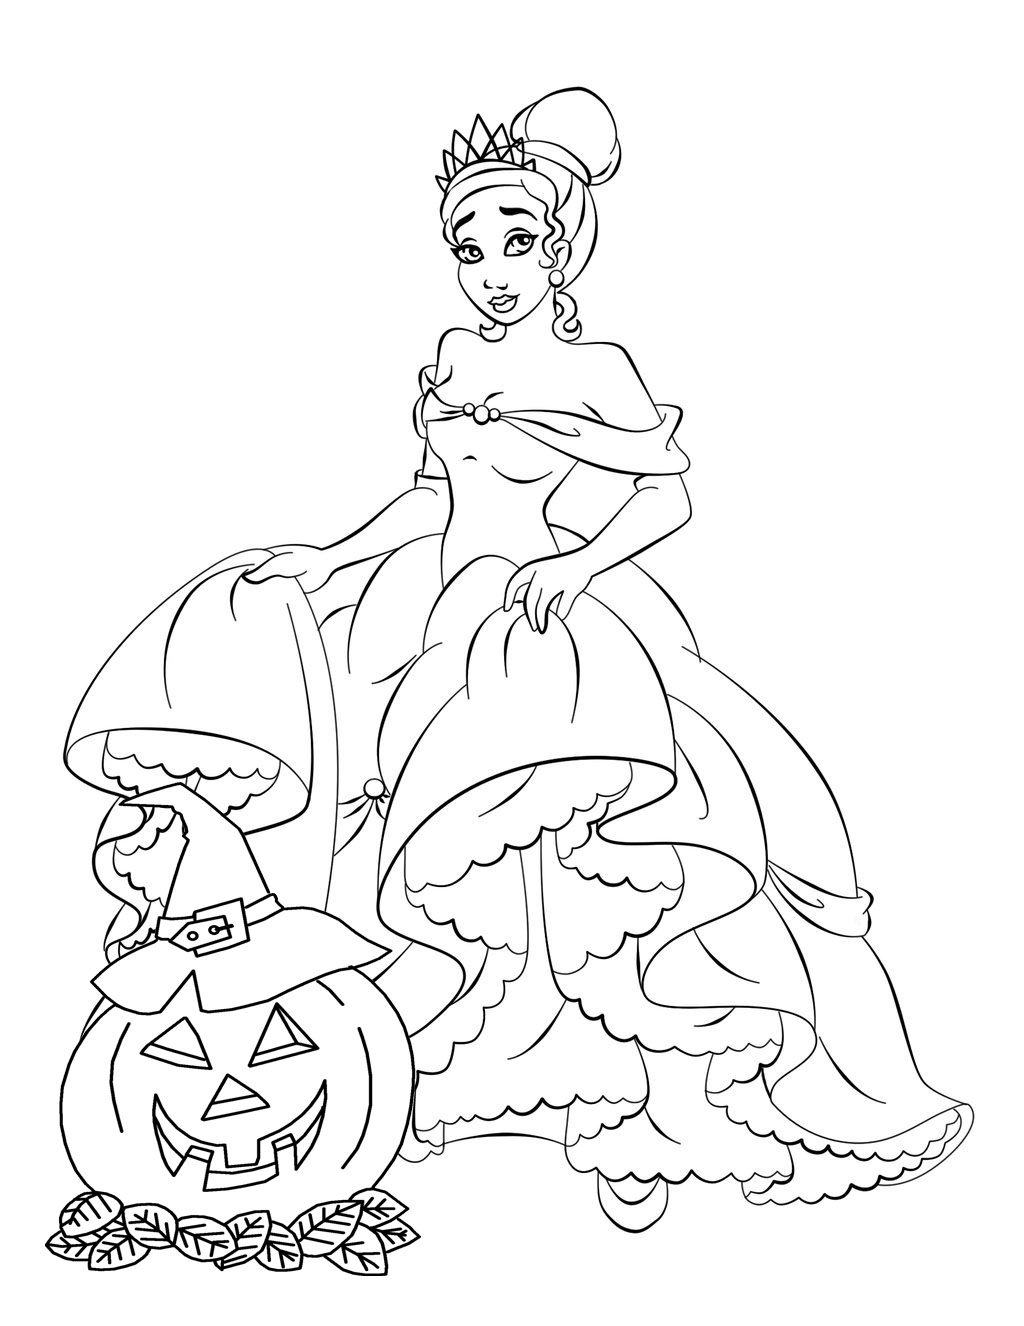 halloween coloring pages detailed dresses - photo#3